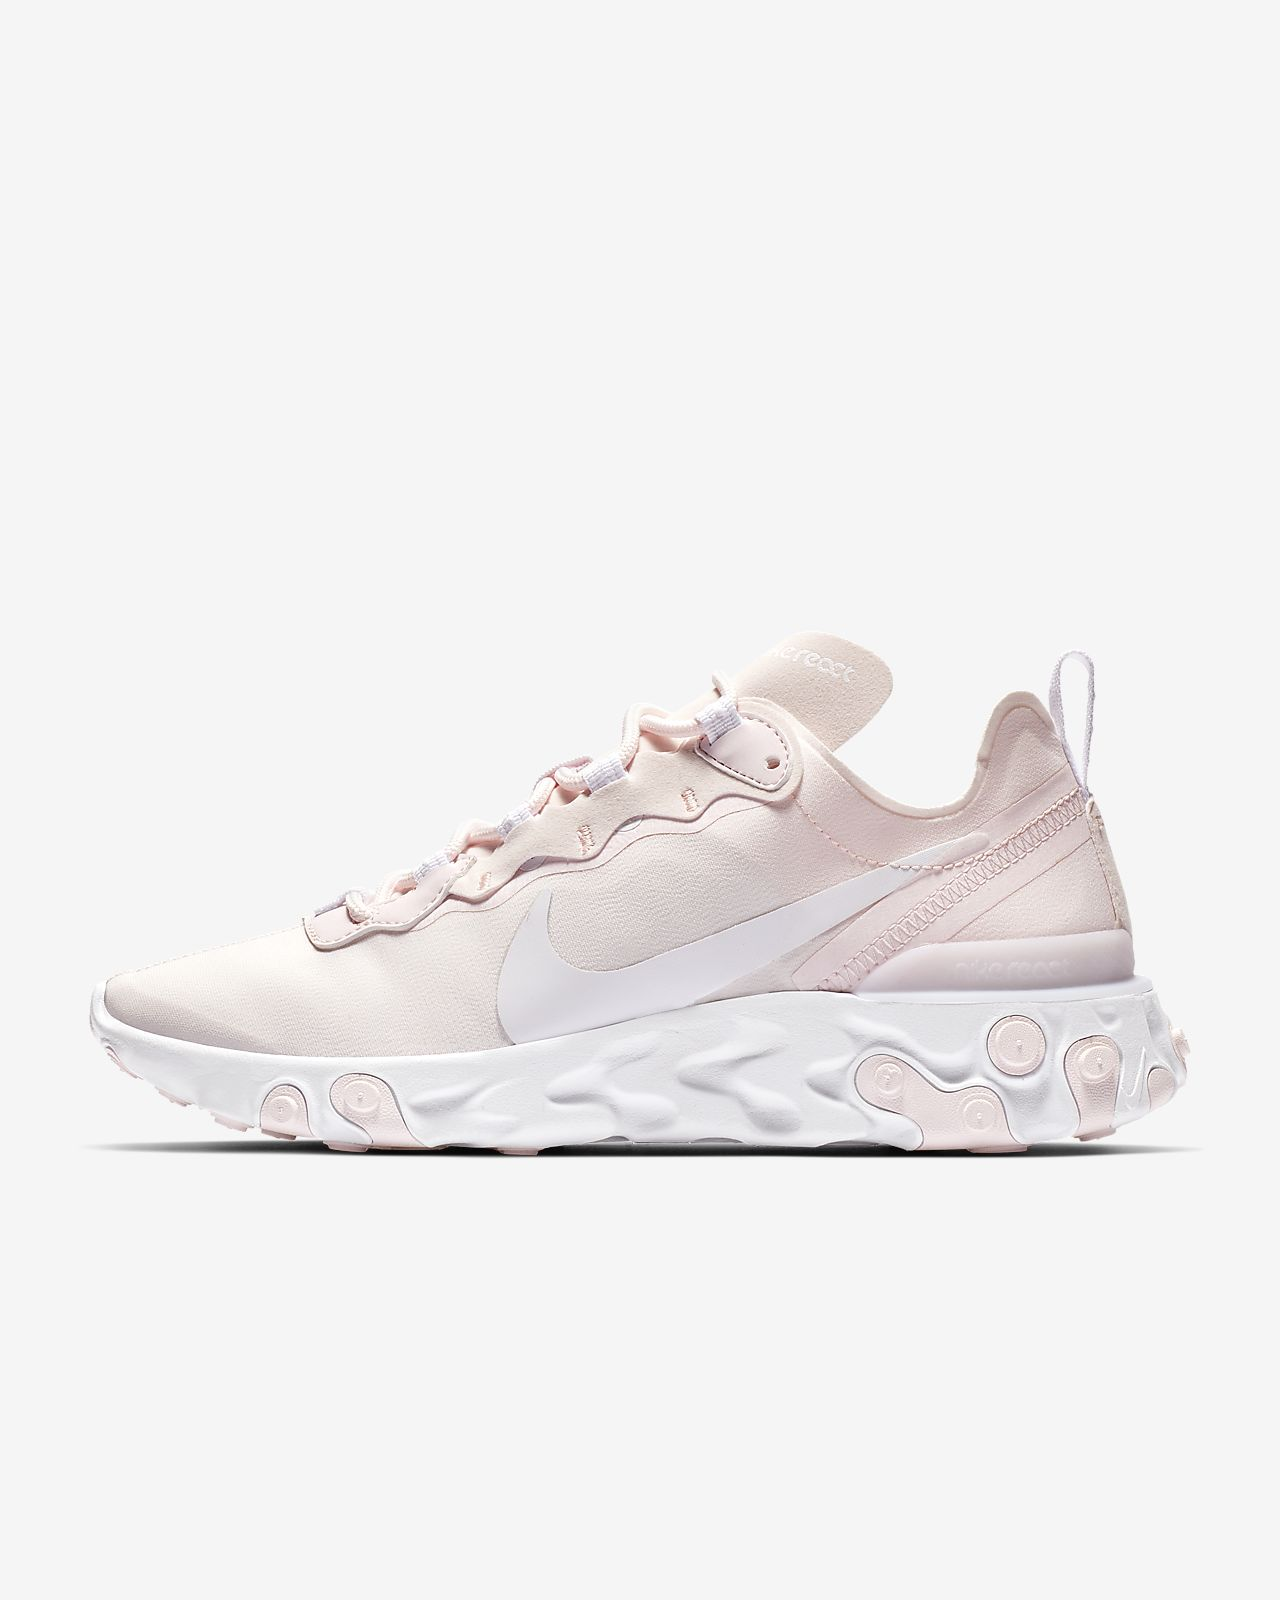 pretty nice 5faaa fa2b4 130 €. Low Resolution Chaussure Nike React Element 55 pour Femme Chaussure  Nike React Element 55 pour Femme